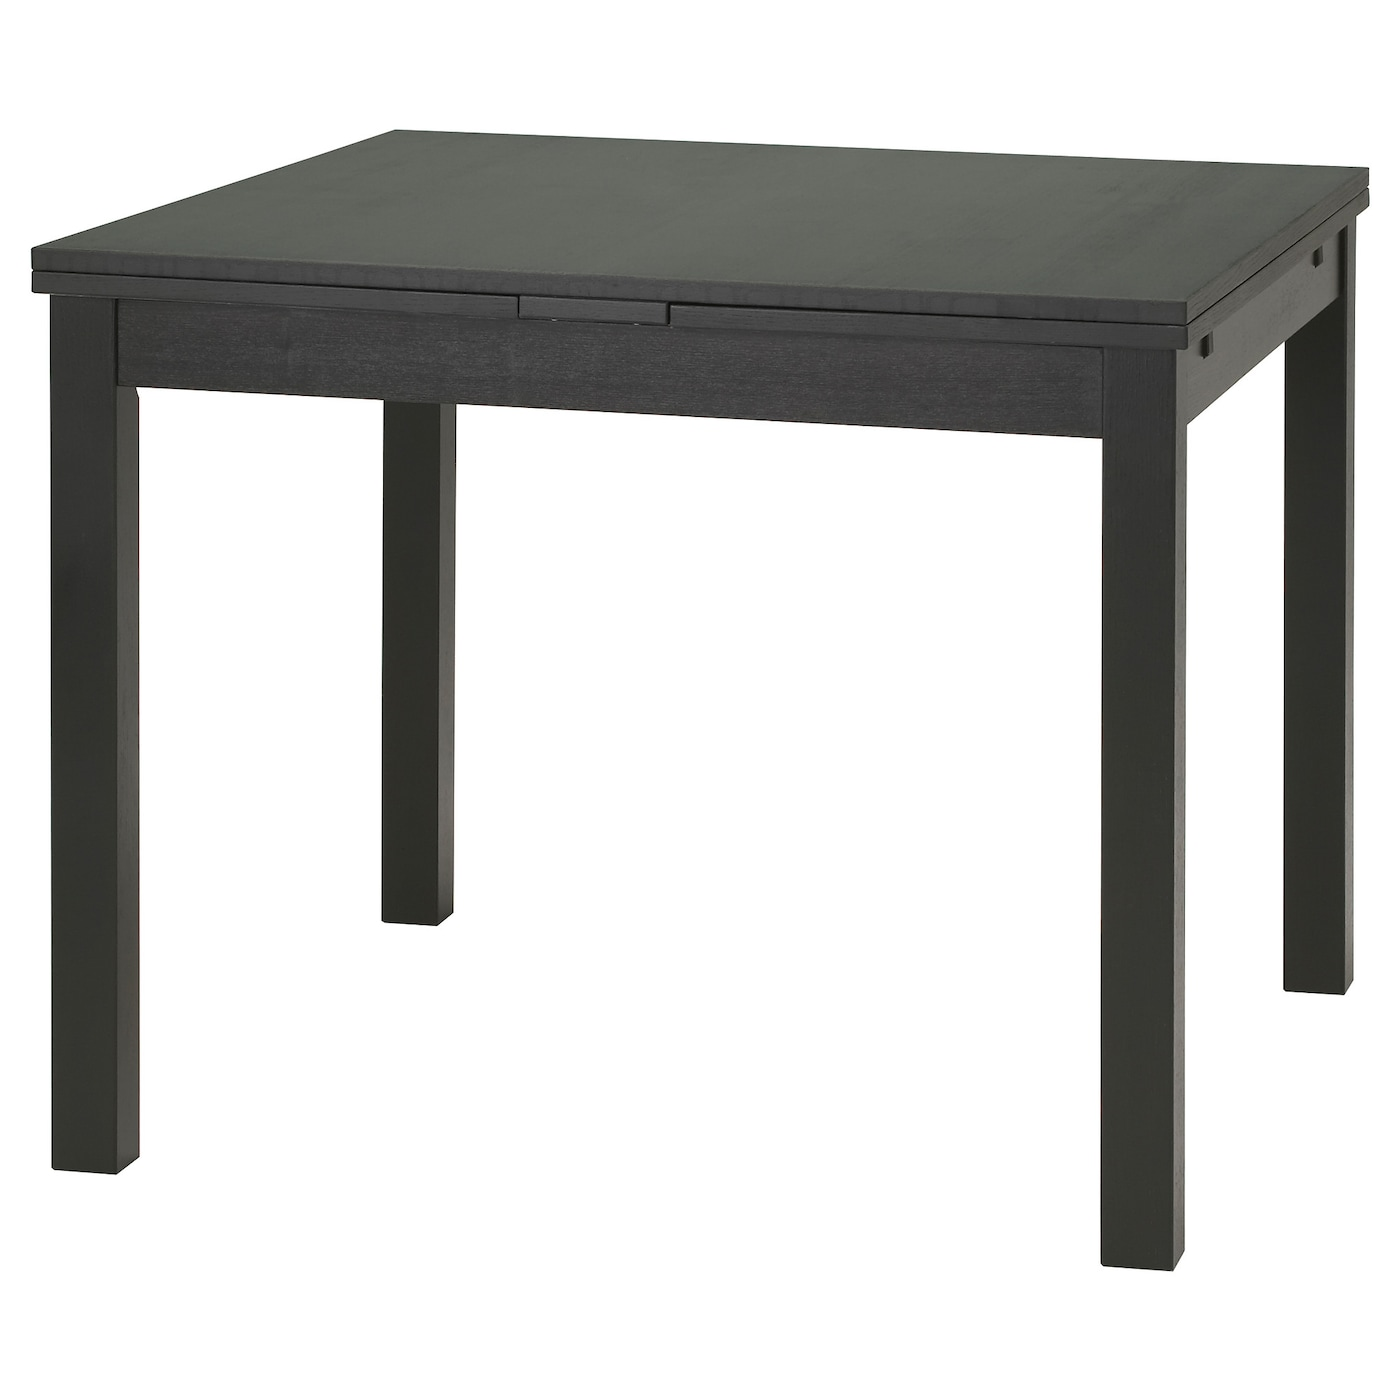 Bjursta extendable table brown black 90 129 168x90 cm ikea for Table extensible 300 cm